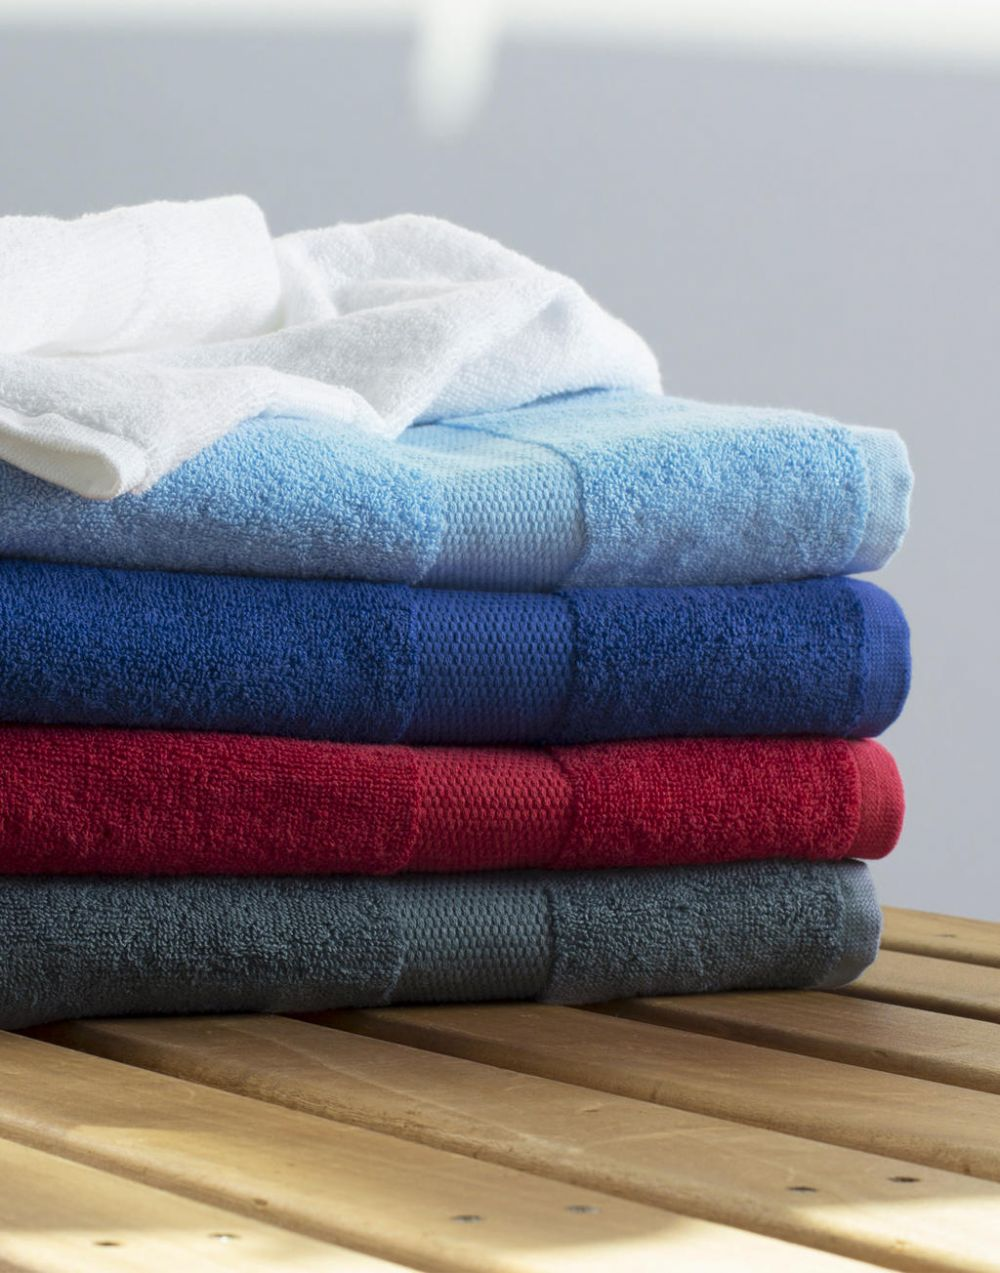 Asciugamani e accappatoi towels by jassz frs00864 immagine 1